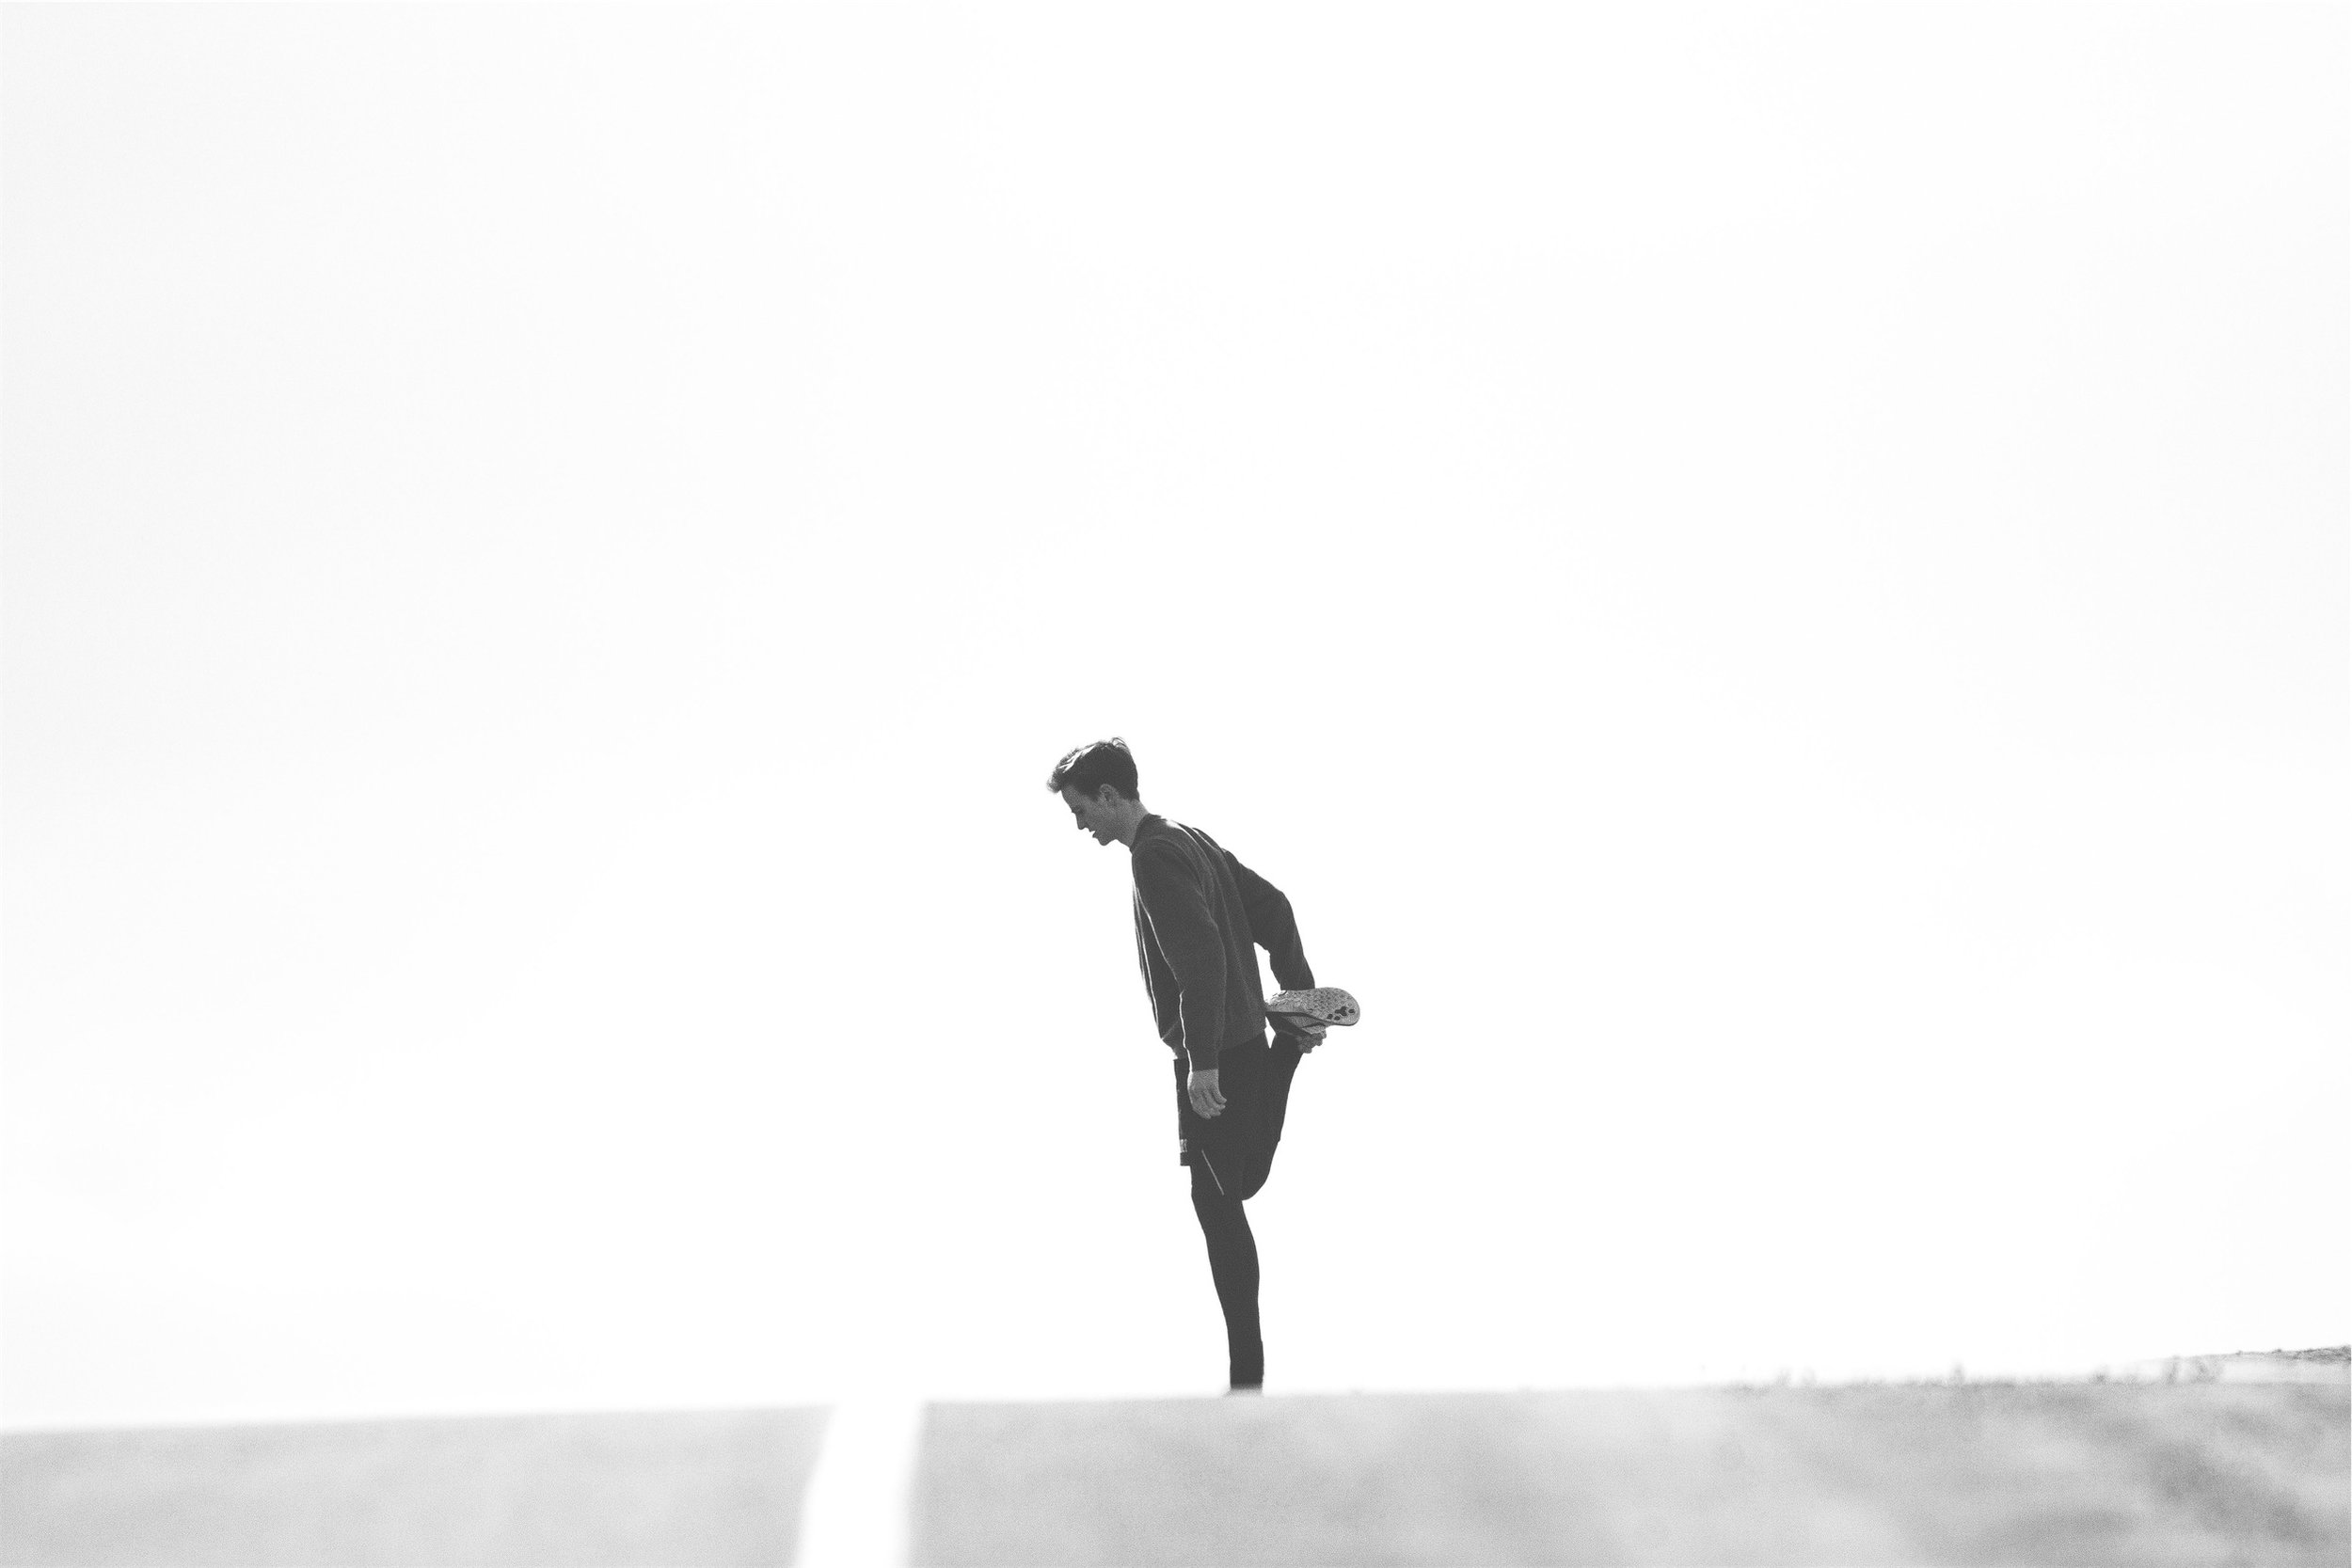 Man stretching on road prior to running